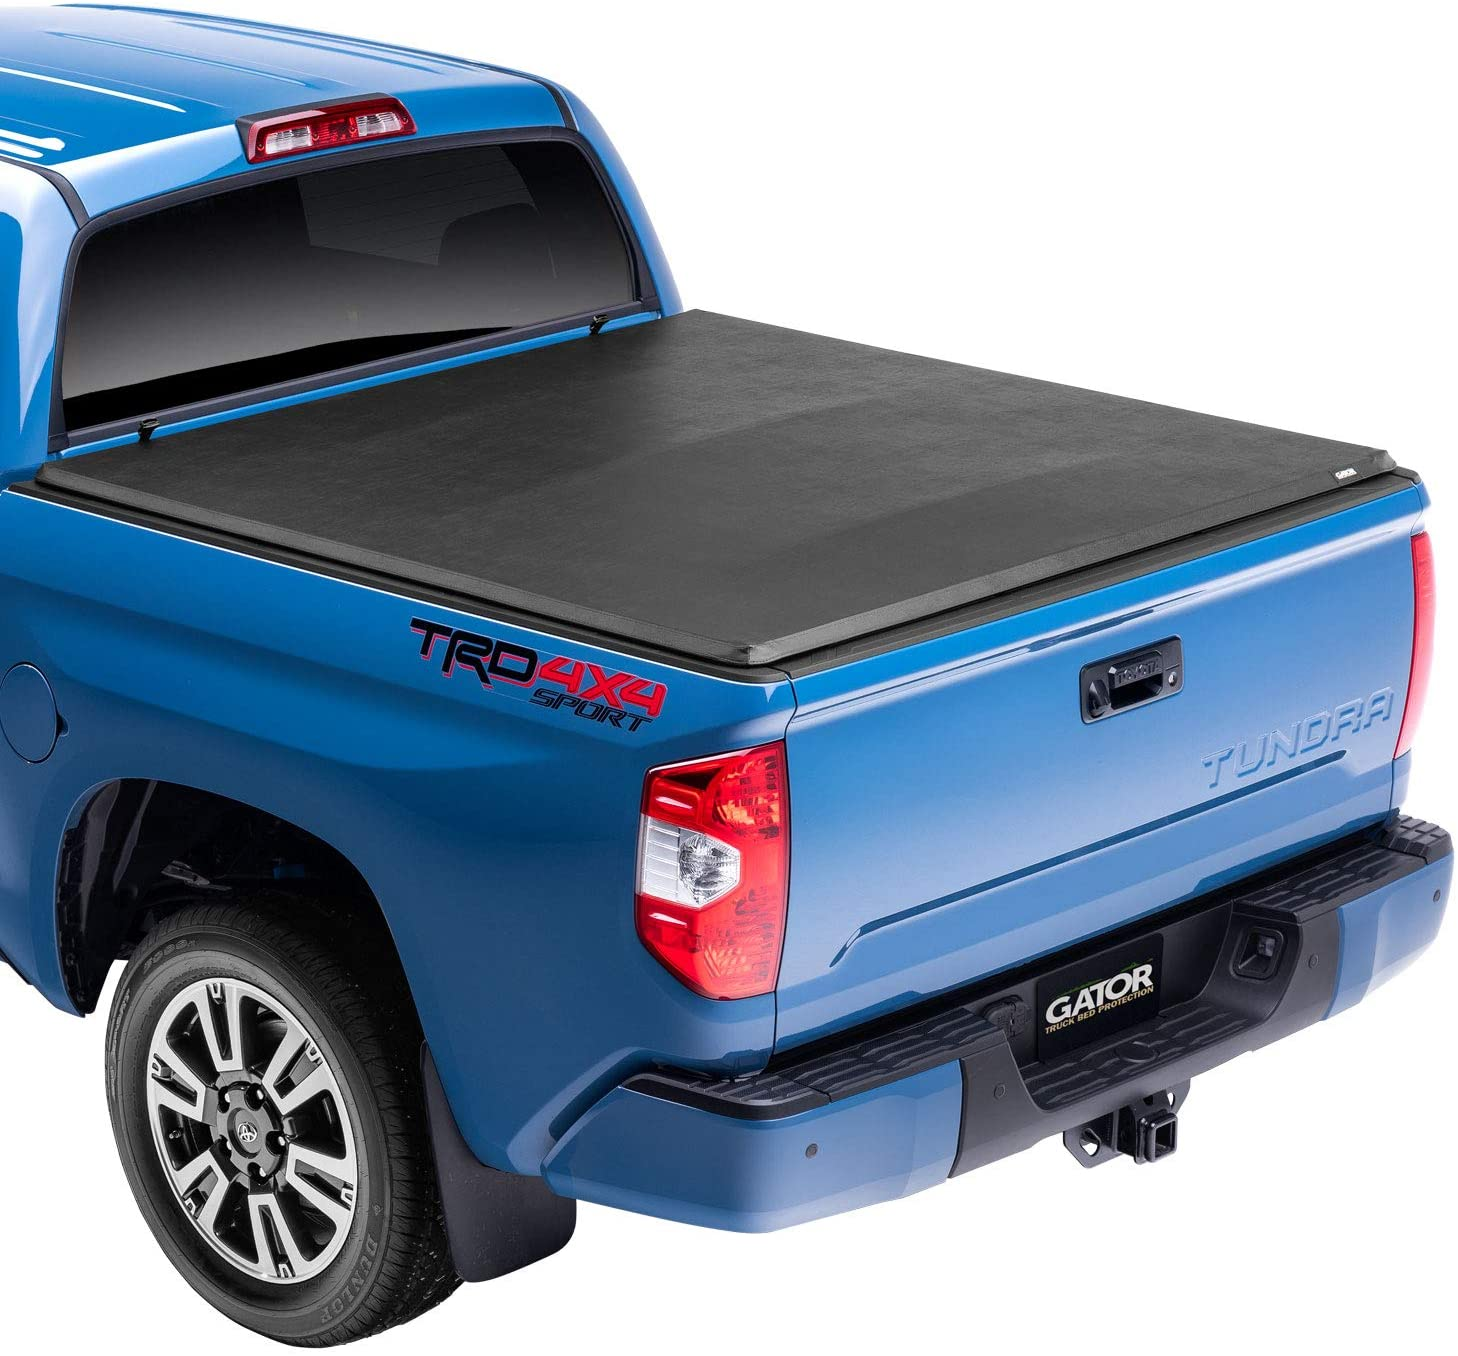 Amazon Com Gator Etx Soft Tri Fold Truck Bed Tonneau Cover 59406 Fits 2014 2020 Toyota Tundra 5 5 W Out Rail System Bed Made In The Usa Automotive